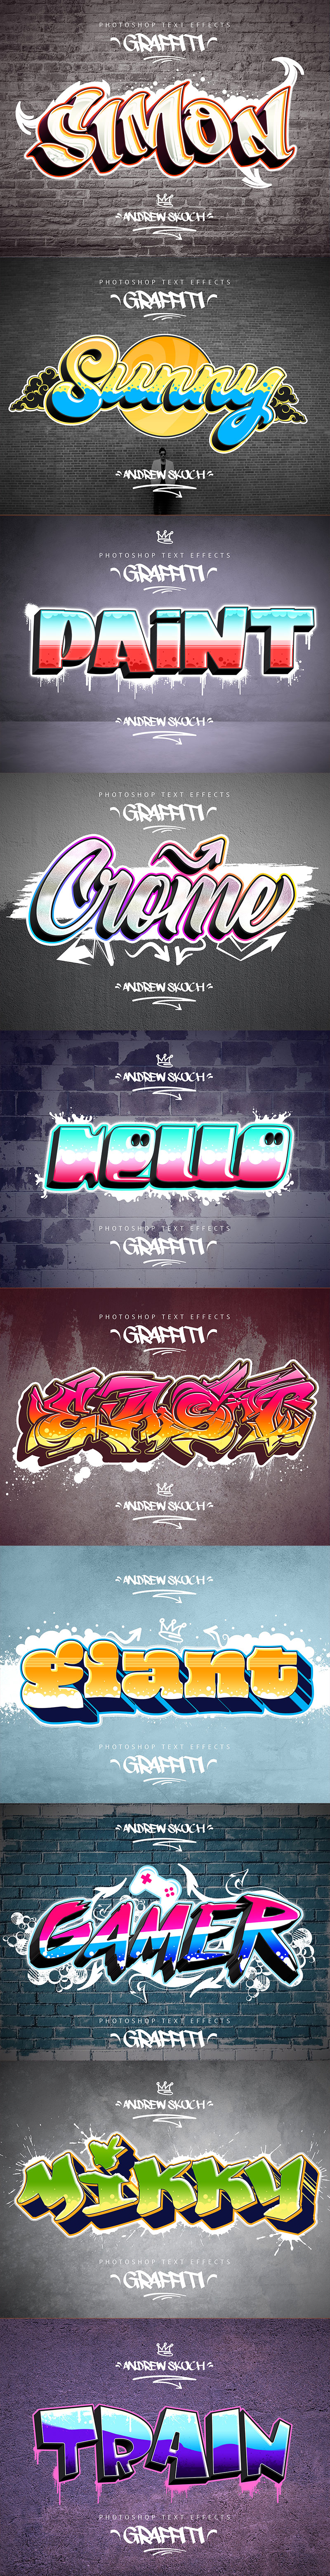 Graffiti Text Effects - 10 PSD - vol 1 por Sko4 / GraphiRiver